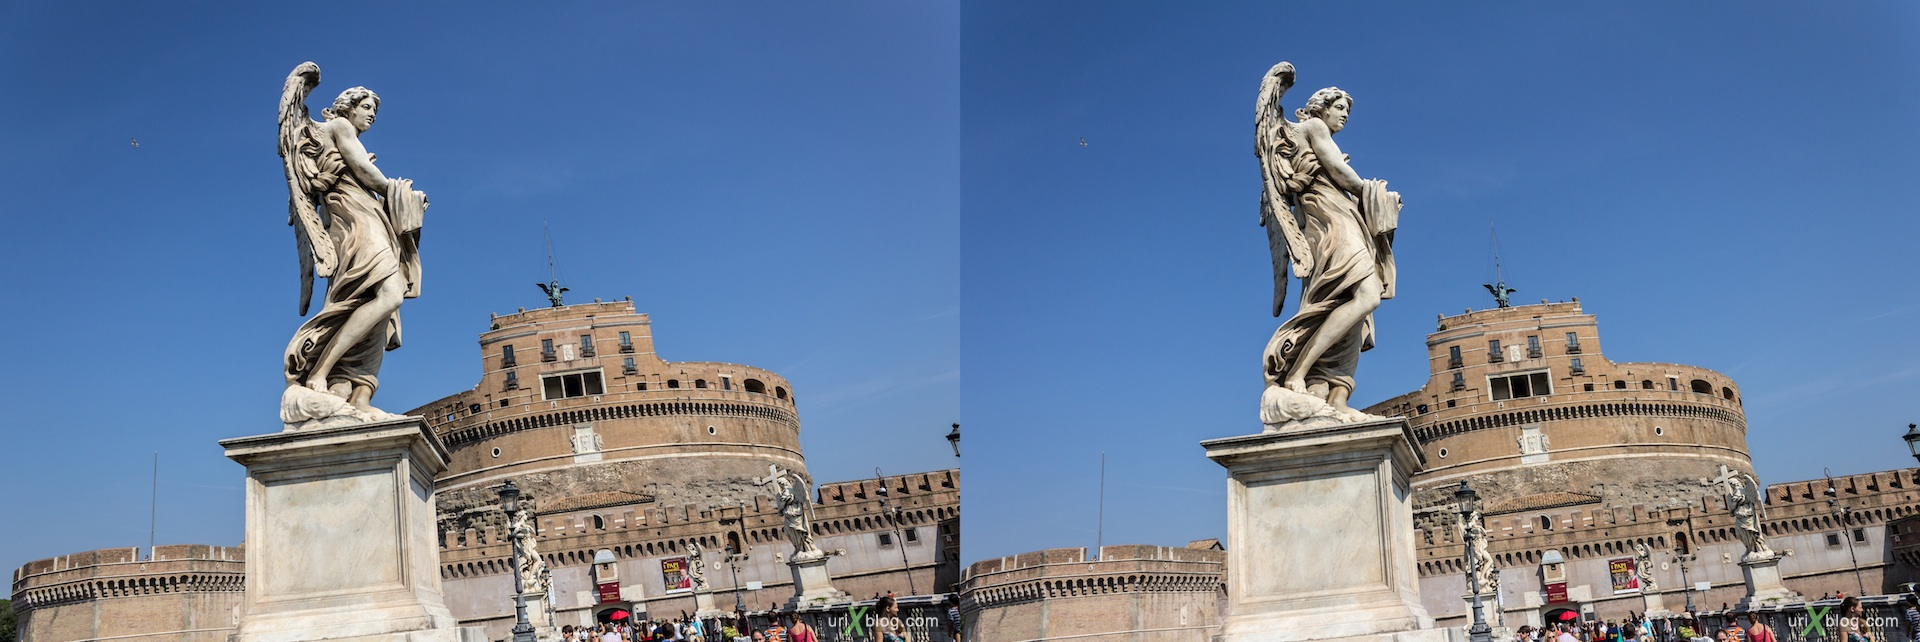 2012, Castel Sant Angelo, Mausoleum of Hadrian, bridge, 3D, stereo pair, cross-eyed, crossview, cross view stereo pair